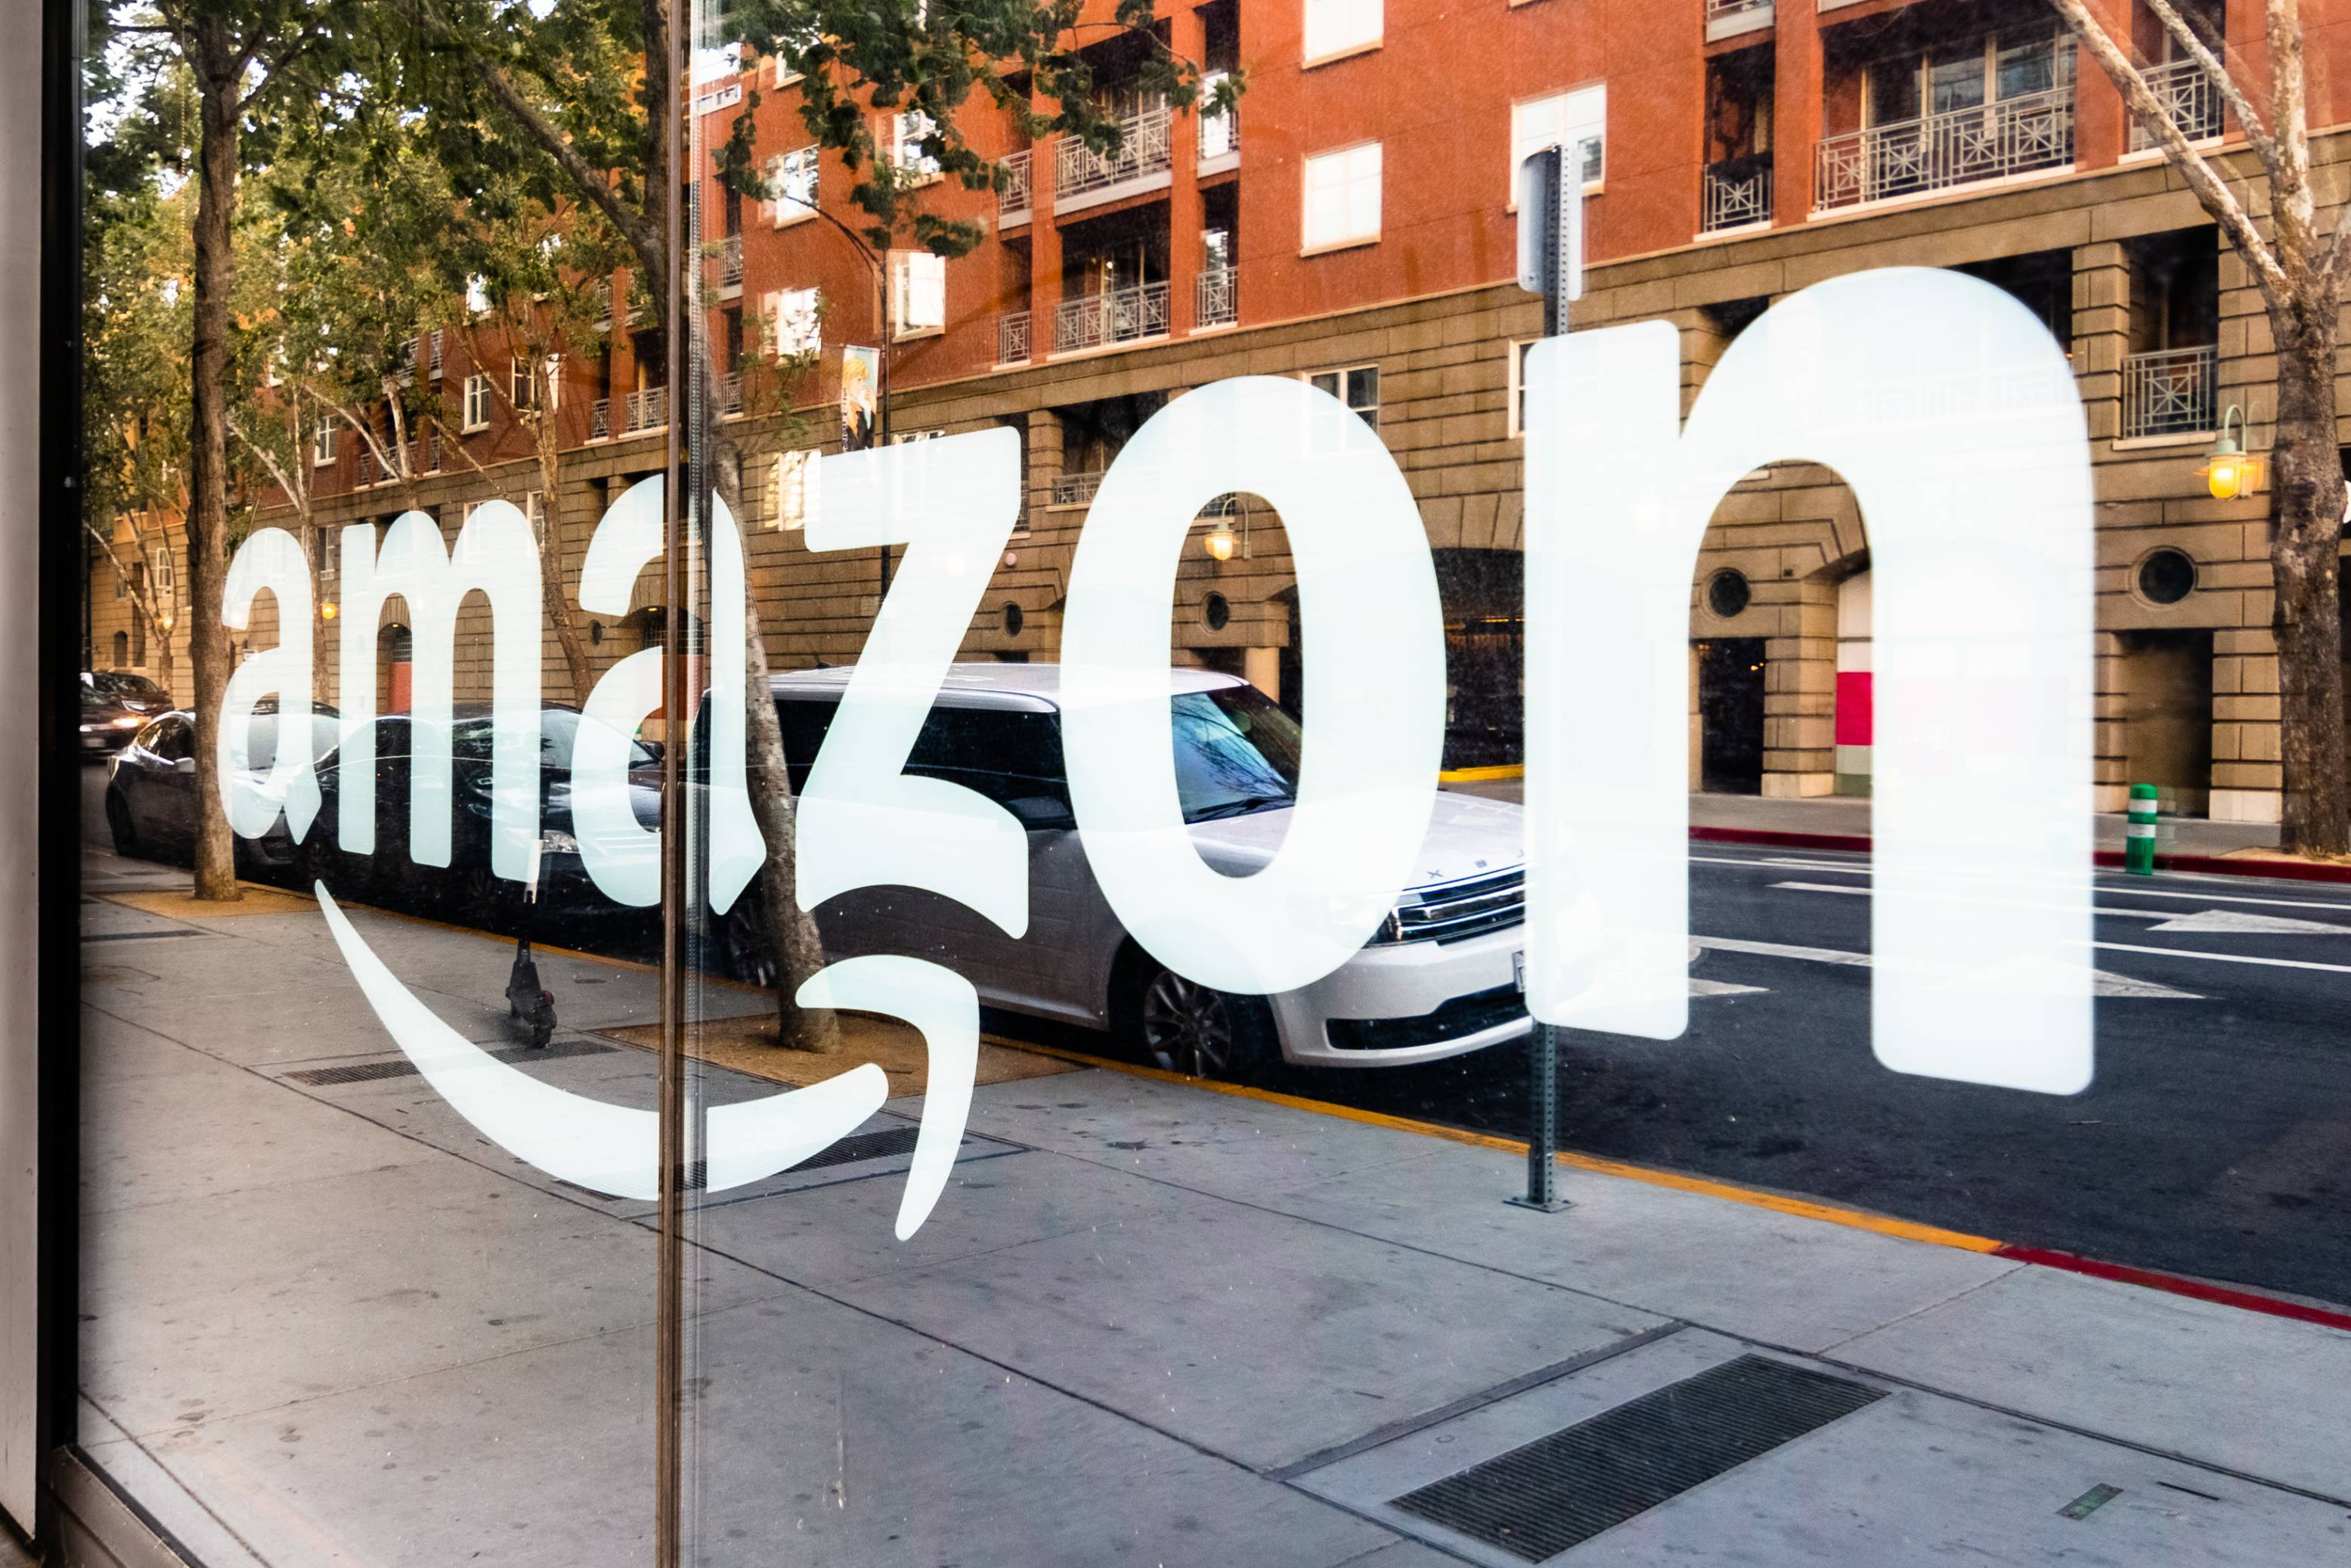 Amazon reaches an all-time high – is it too late to buy shares?